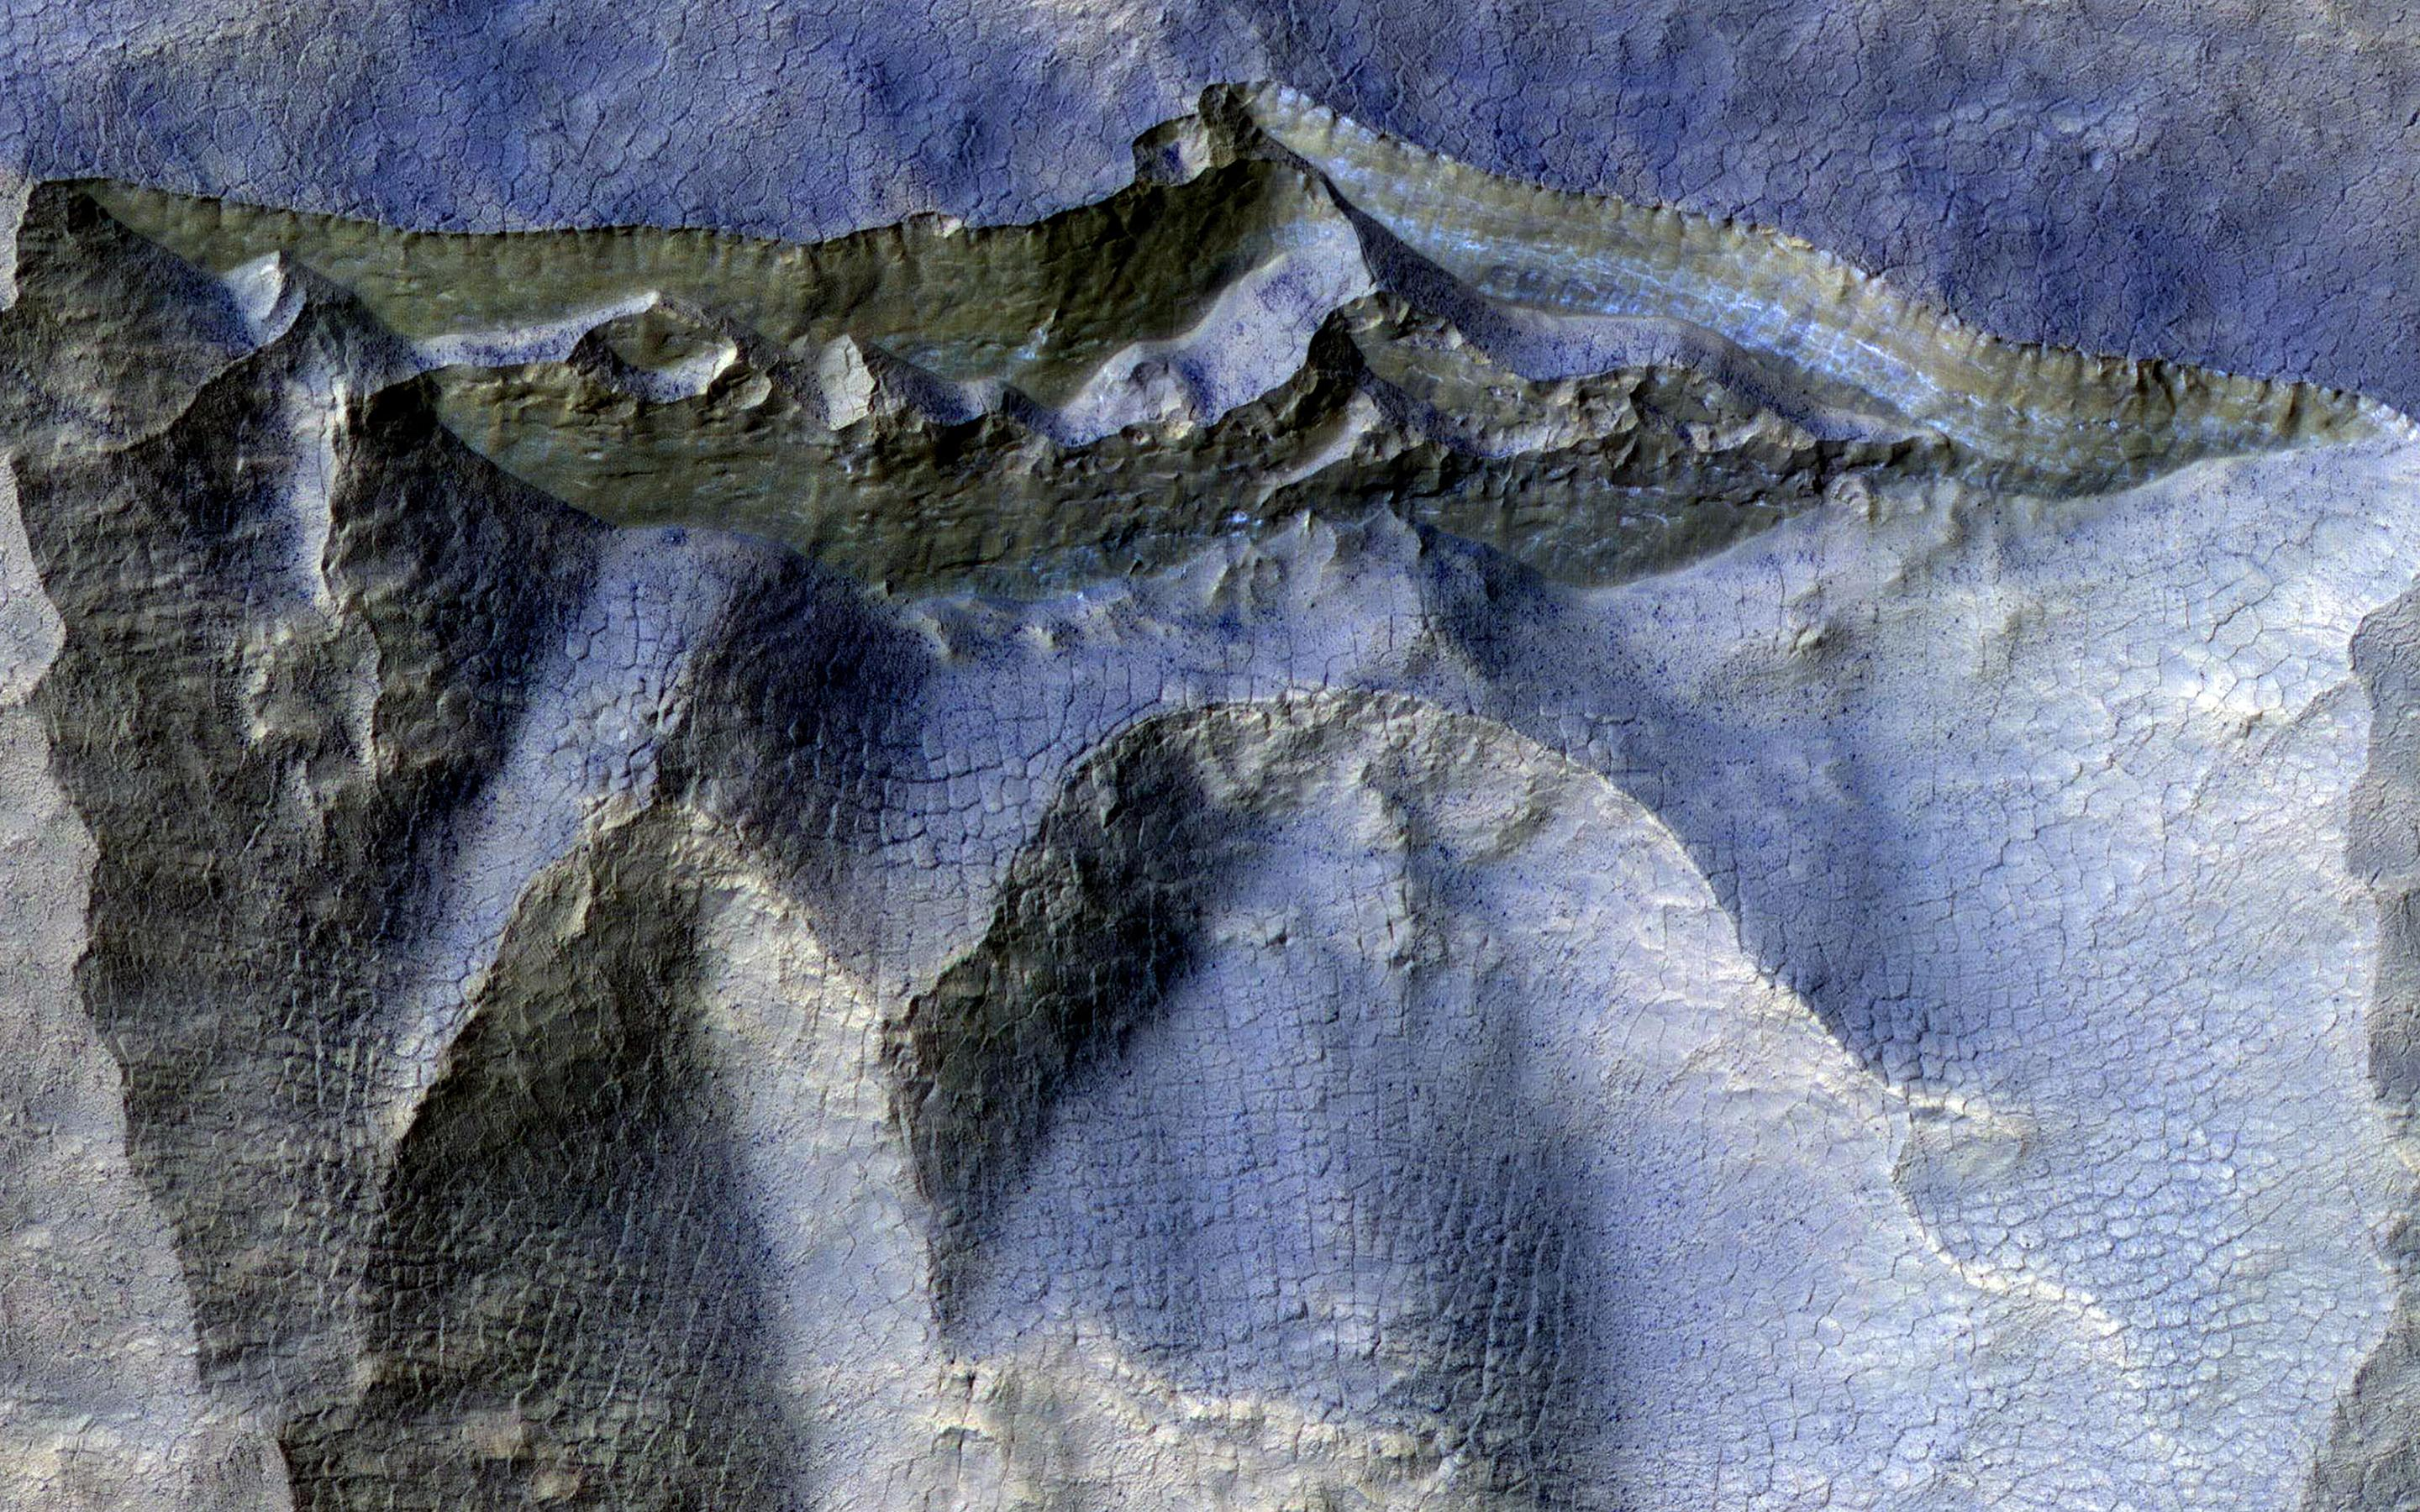 This image acquired on August 15, 2020 by NASAs Mars Reconnaissance Orbiter, shows a brownish, dusty cliff wall, where the faint light-blue-colored ice shows through.